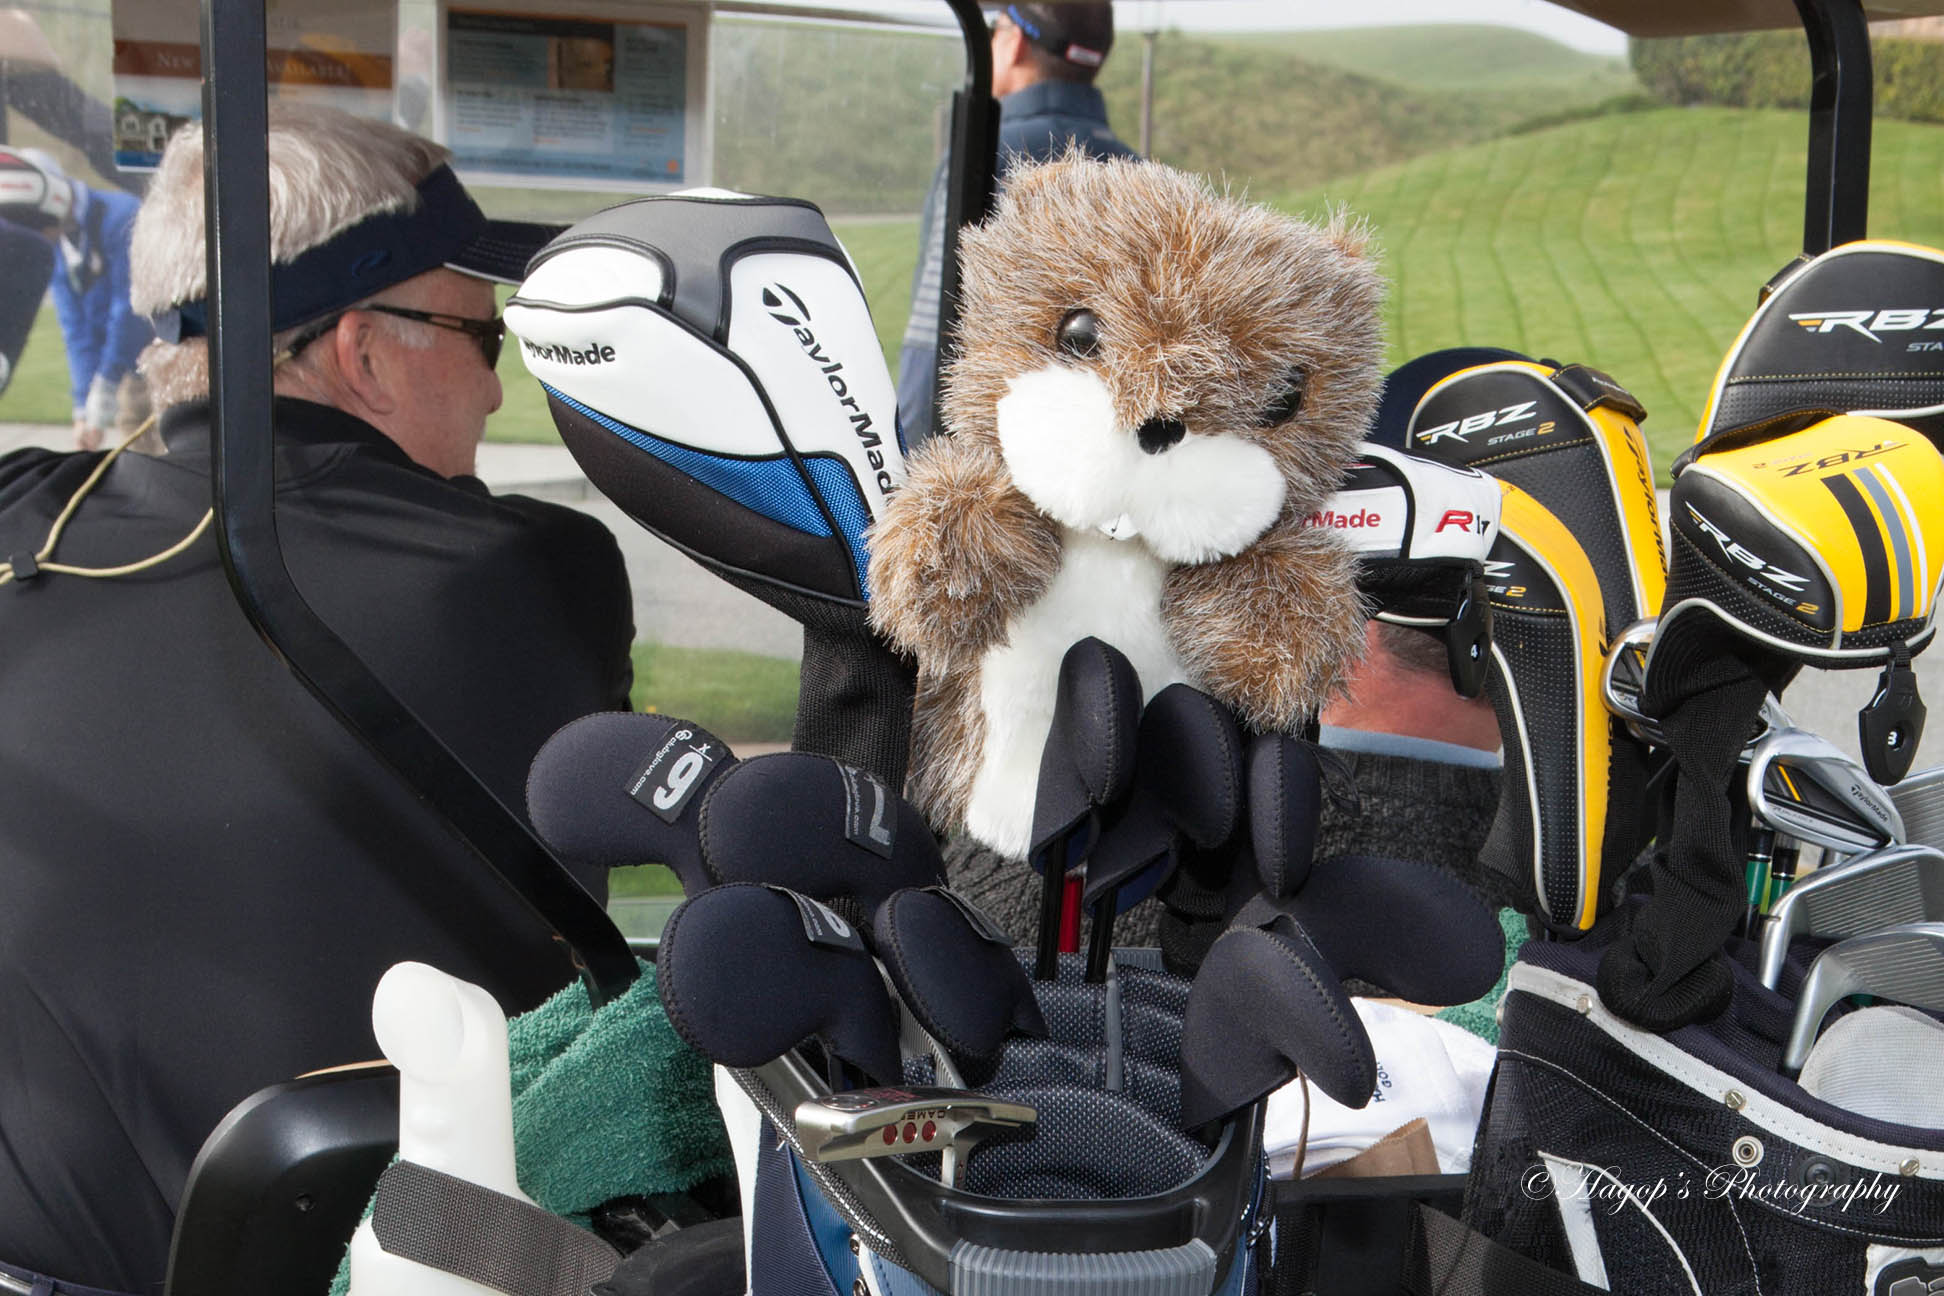 a golfer cart with a stuffed animal